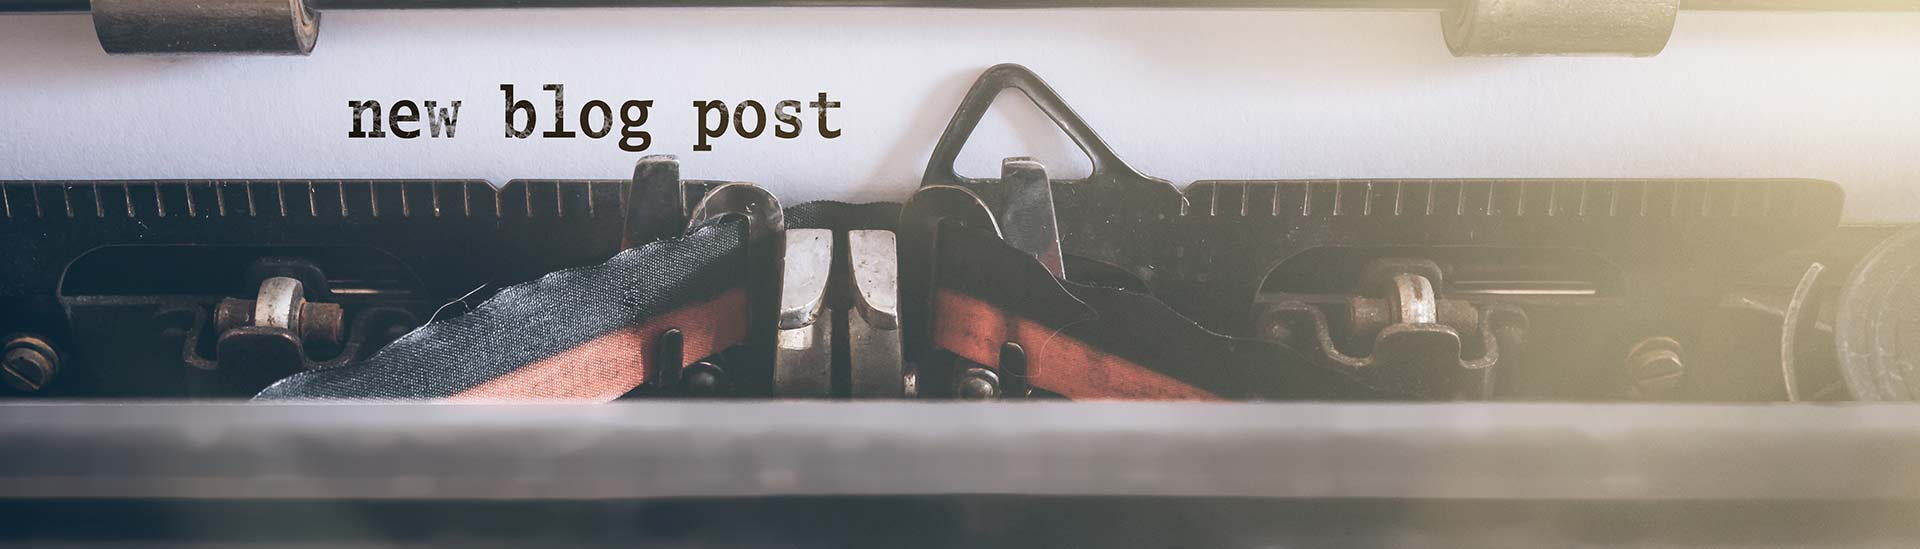 """The picture of old typewriter. """"new blog post"""" typed out on the white paper."""